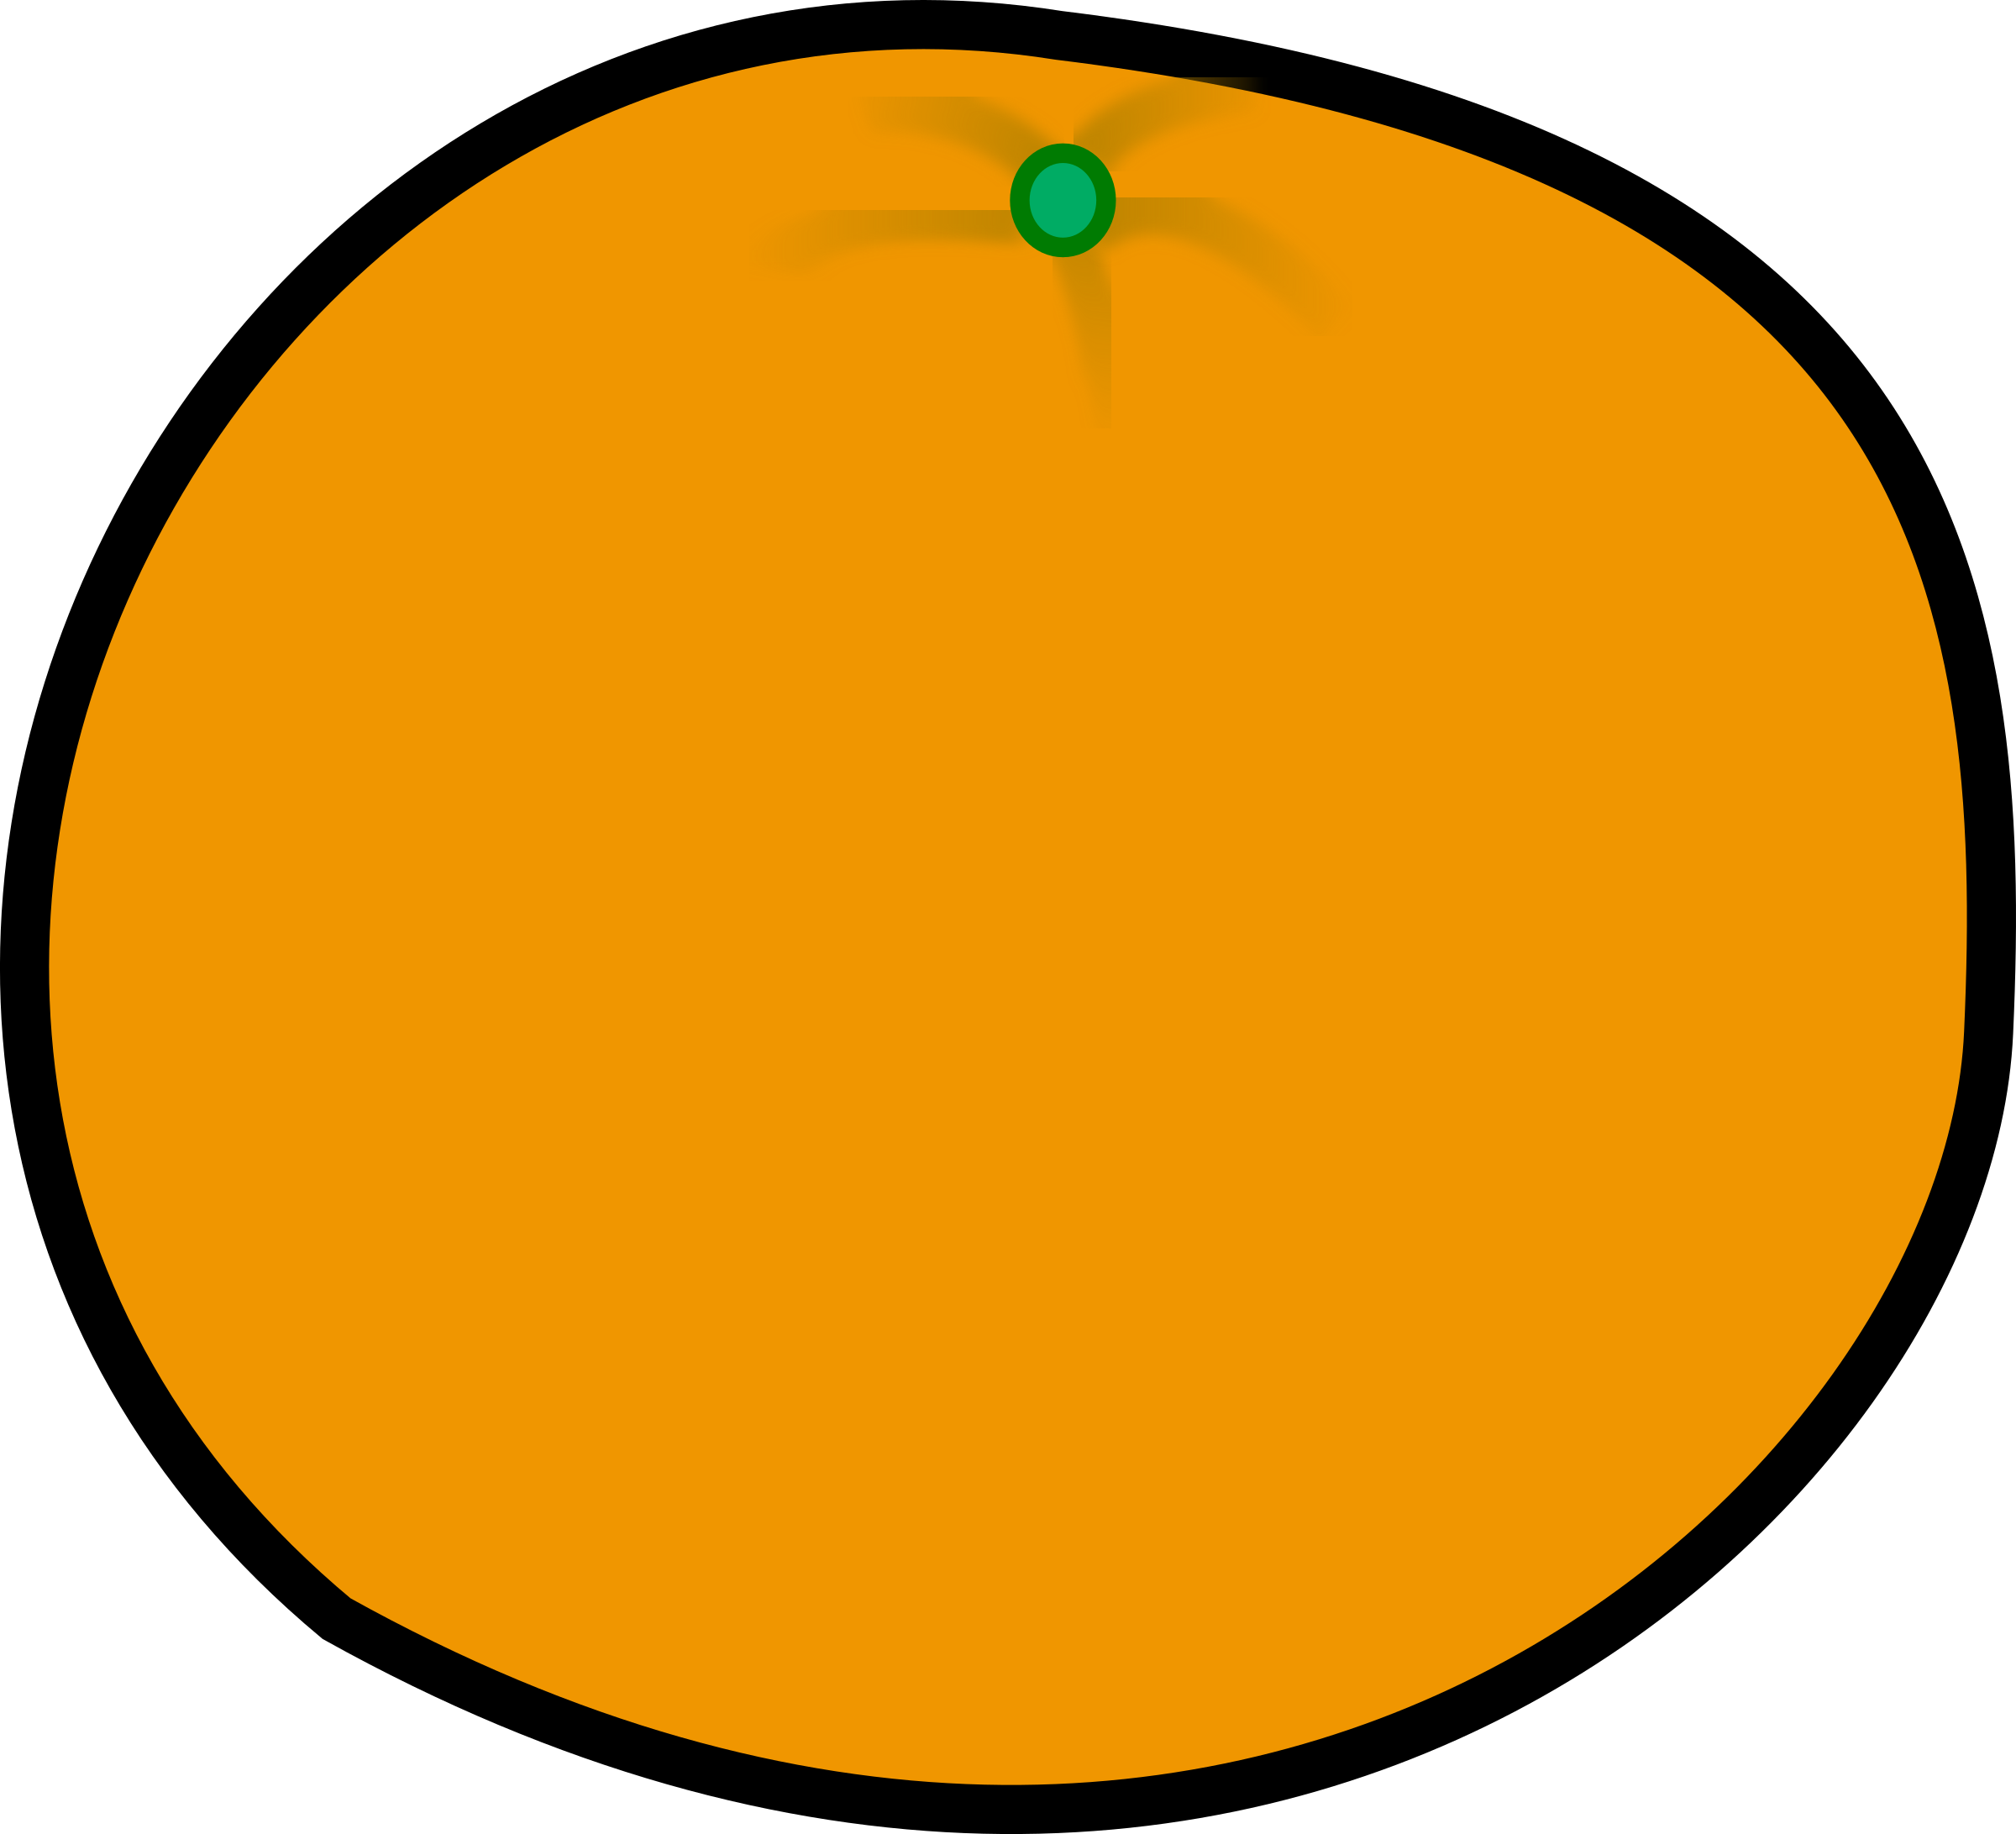 Simple orange by laobc